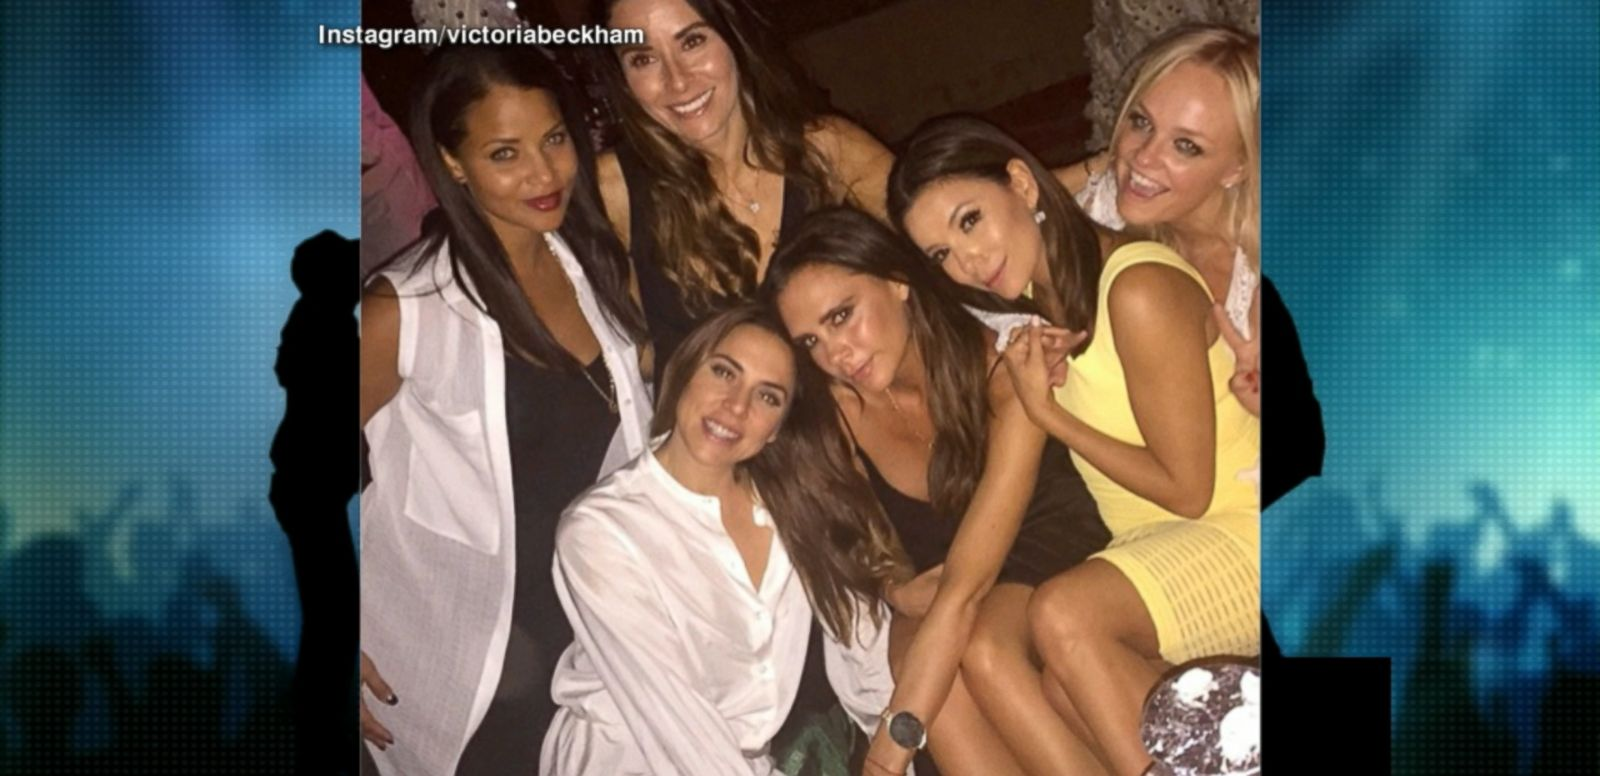 VIDEO: Actress Eva Longoria also joined the women for a celebration of Beckham's birthday milestone.